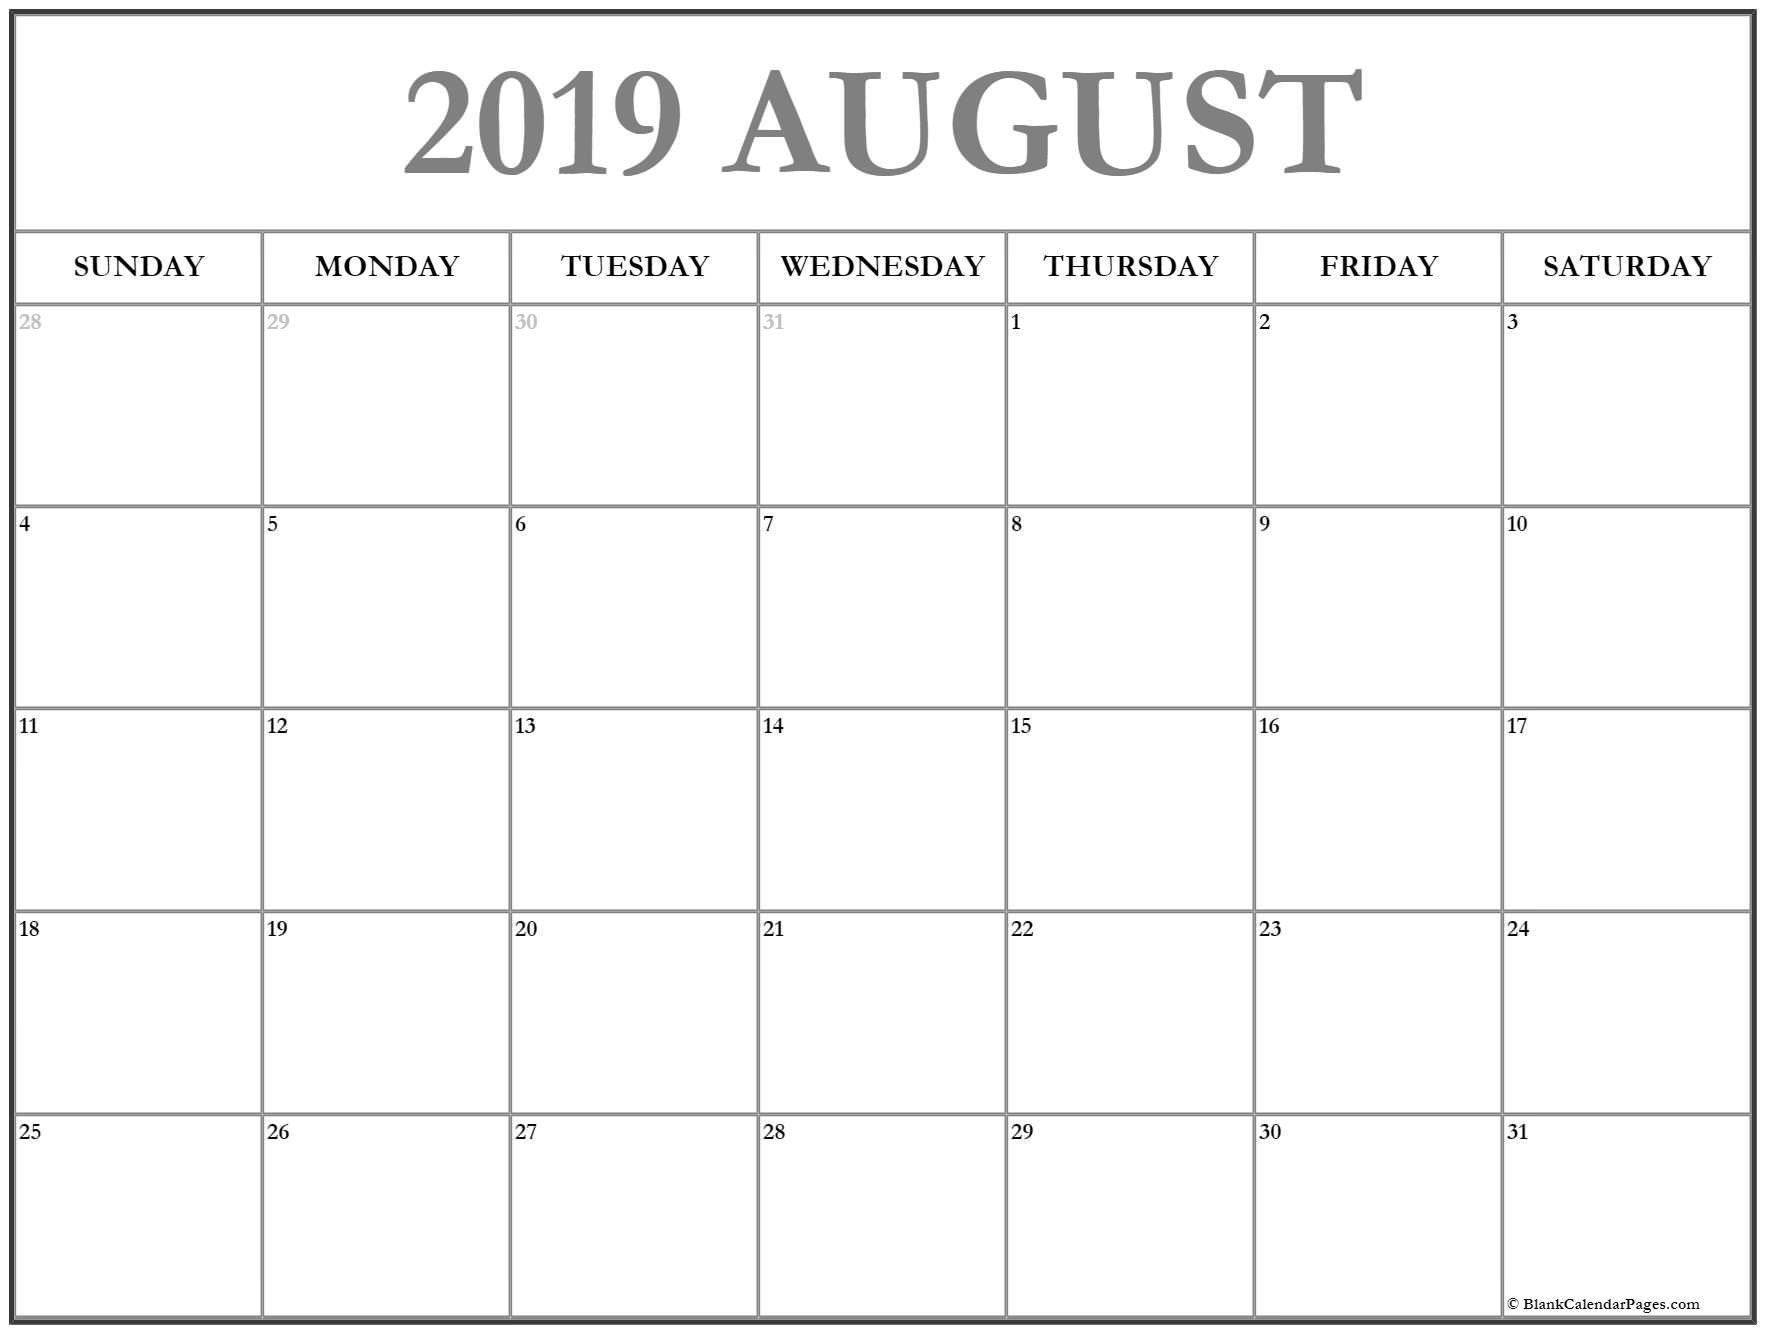 August 2019 Calendar | Free Printable Monthly Calendars within Blank Calendar Of August Full Page